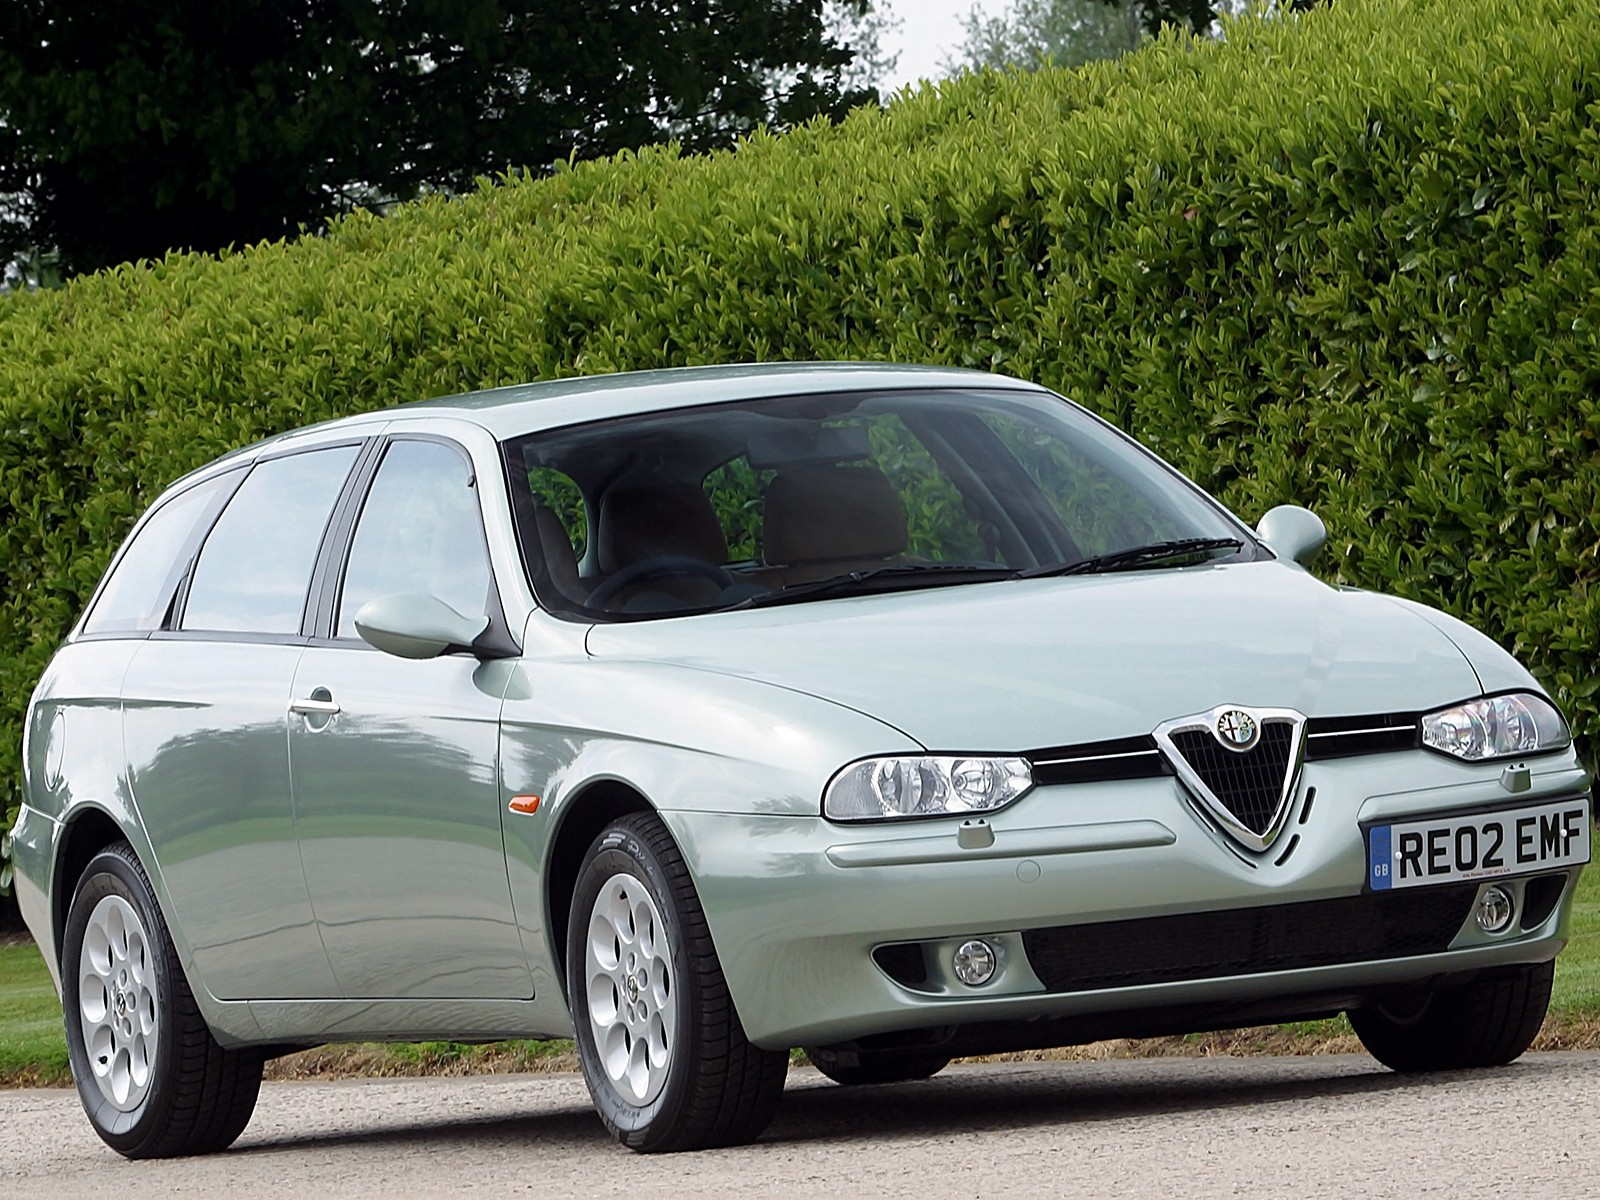 alfa romeo 156 sportwagon specs 2000 2001 2002 2003. Black Bedroom Furniture Sets. Home Design Ideas